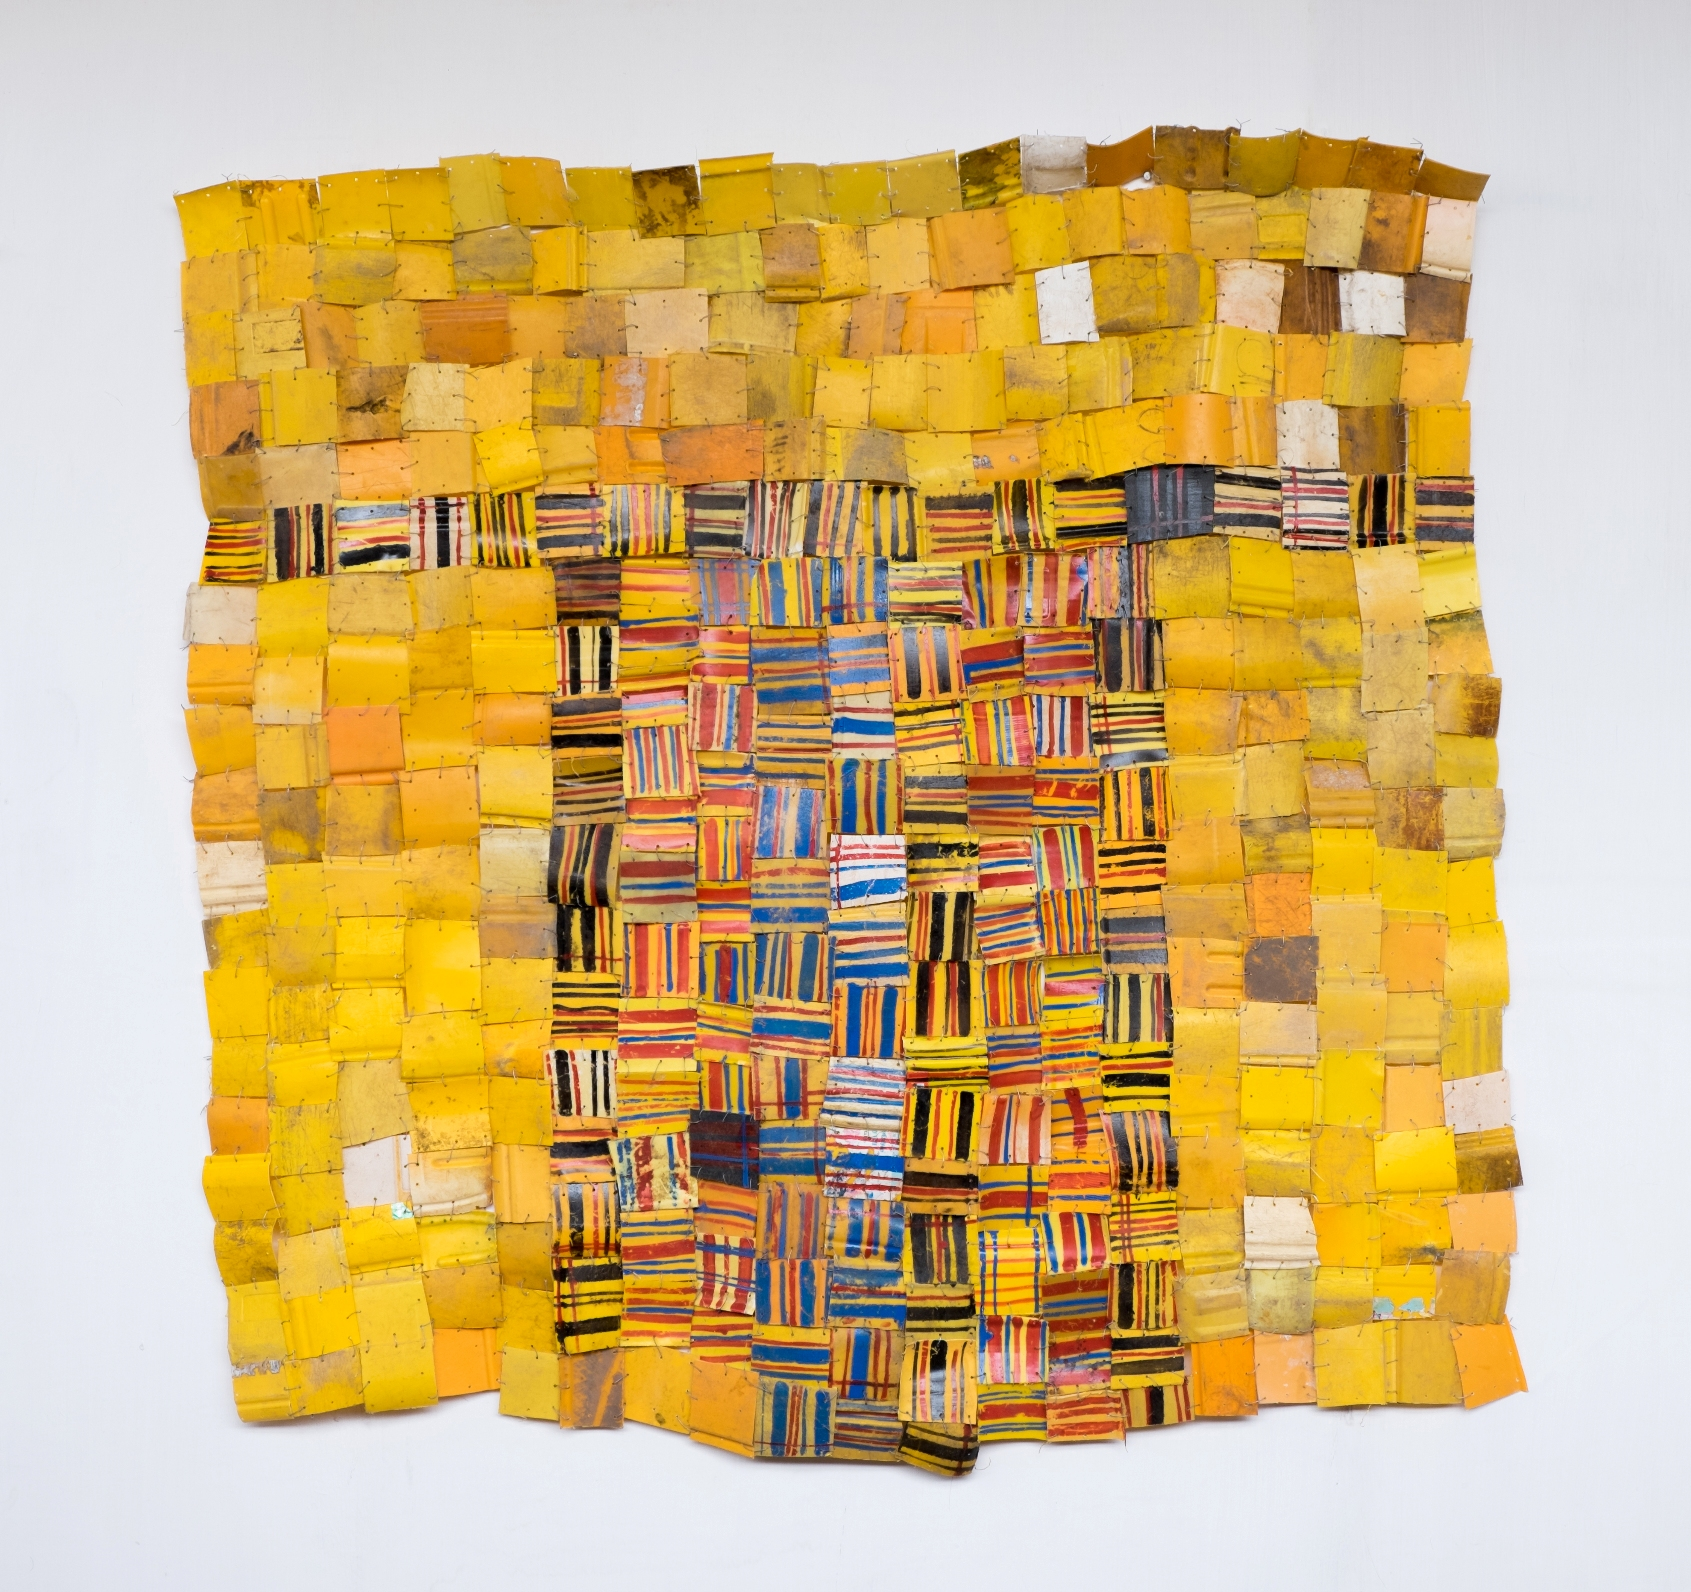 Serge Attukwei Clottey, Voices Demanding, 2016, plastics, wire and oil paint, 64''x 64'', courtesy the artist and Gallery 1957